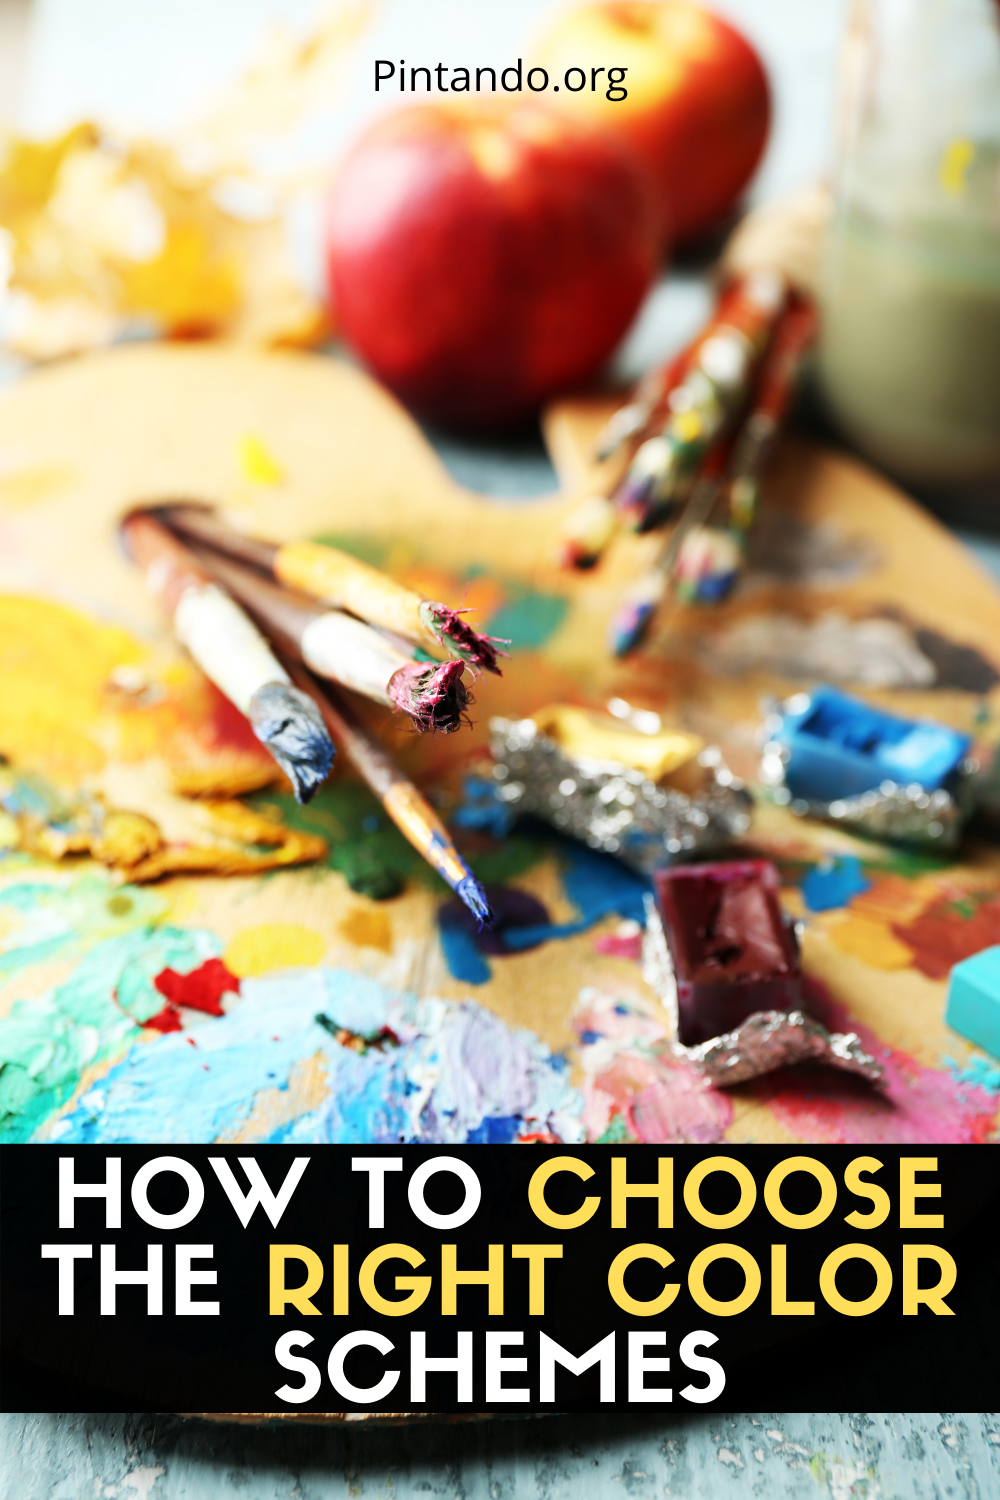 HOW TO CHOOSE THE RIGHT COLOR SCHEMES